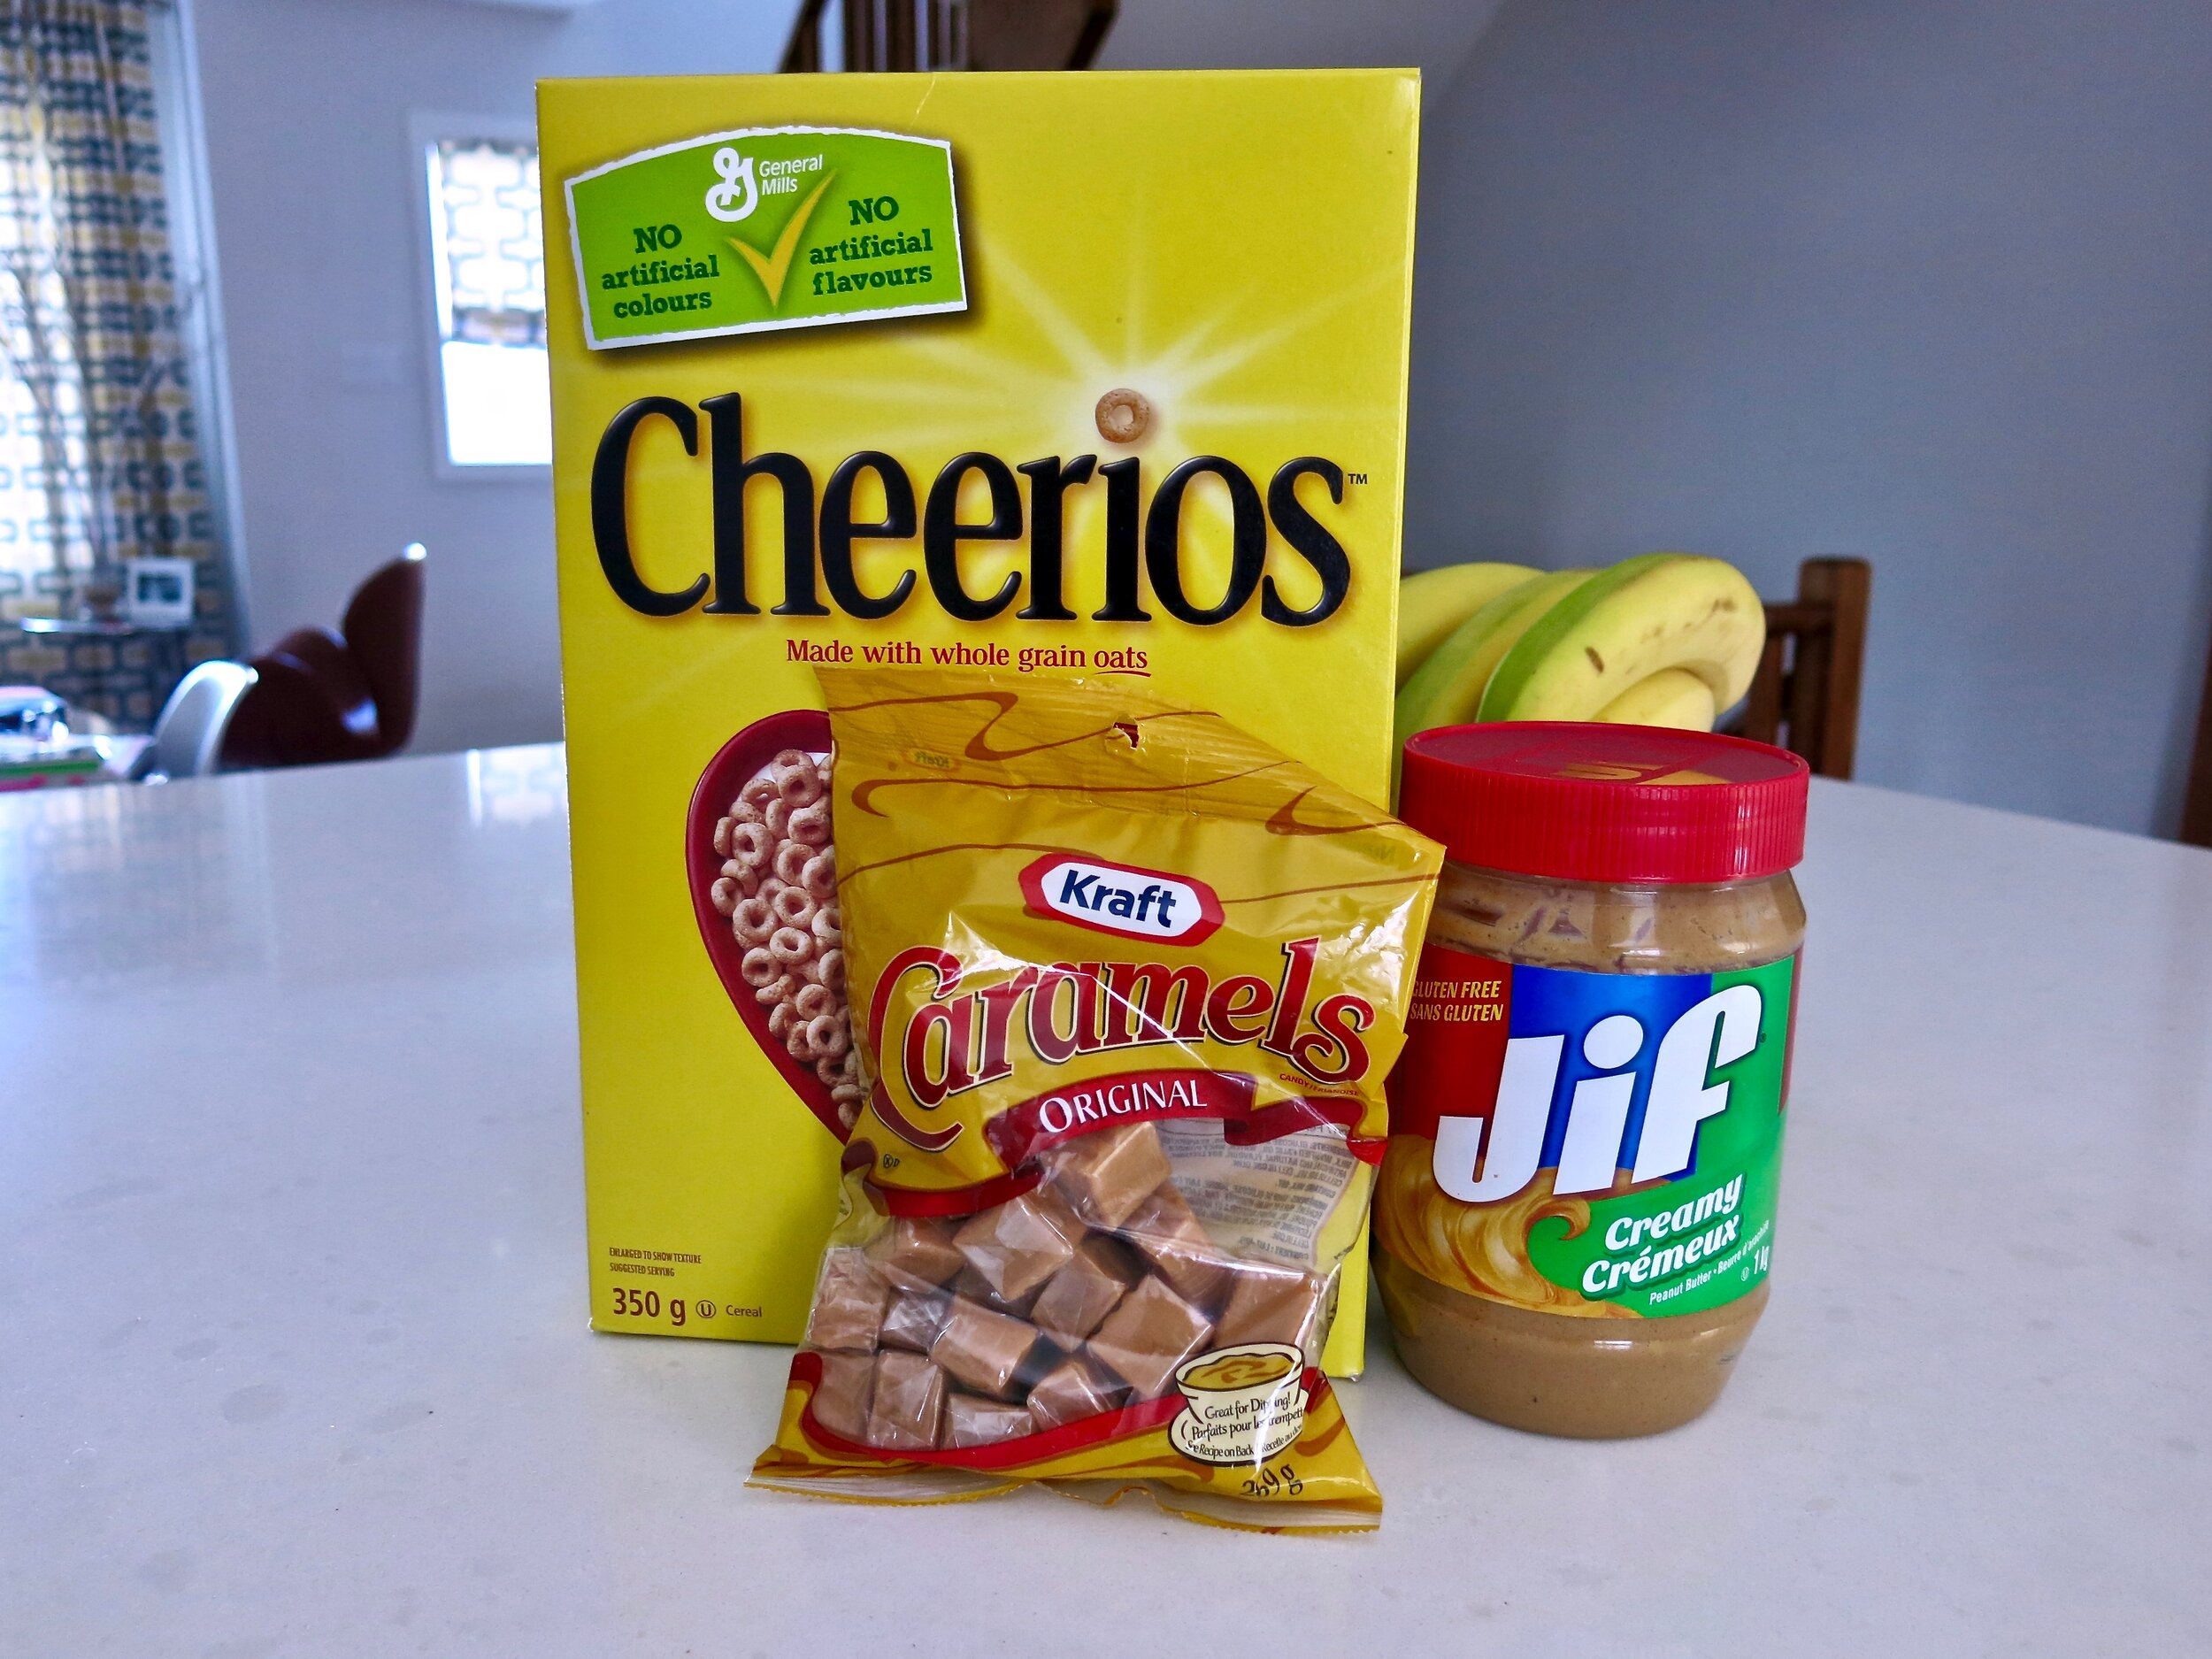 This is what breakfast looked like growing up.